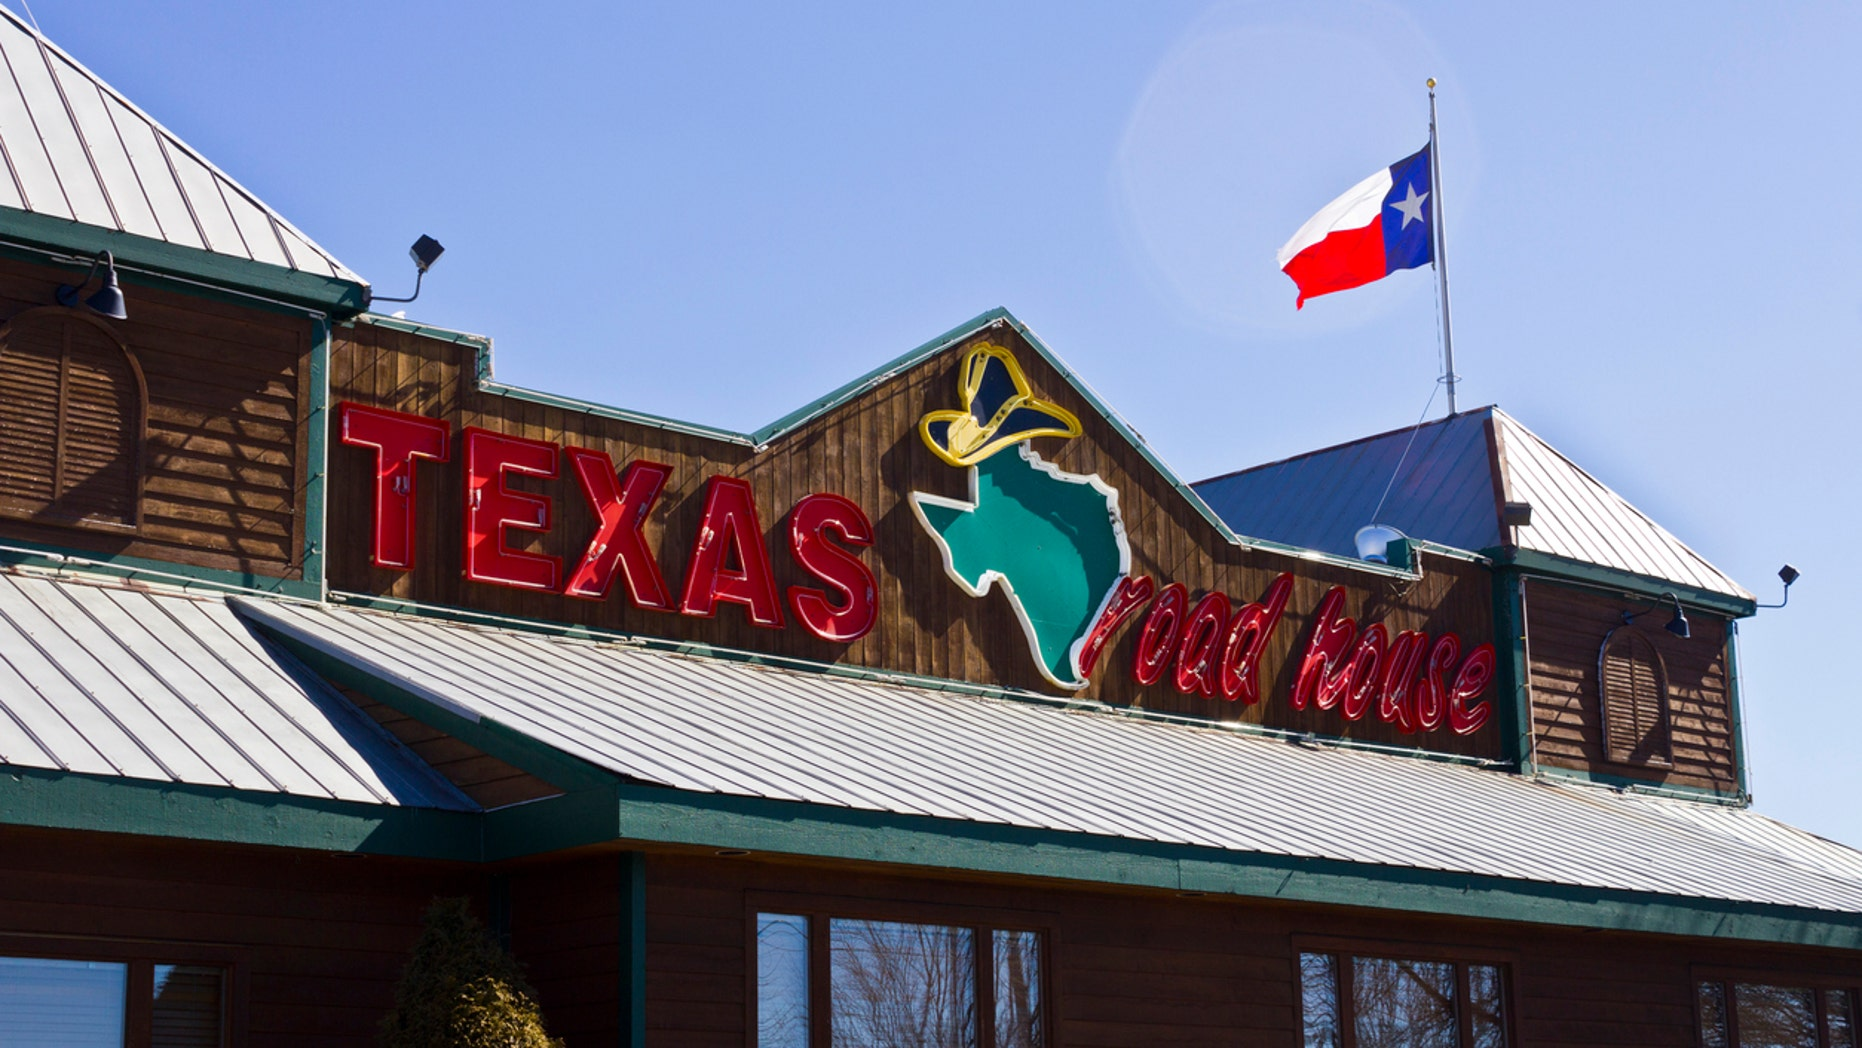 Texas Roadhouse has apologized for an incident last week involving a breastfeeding mother in Kentucky.